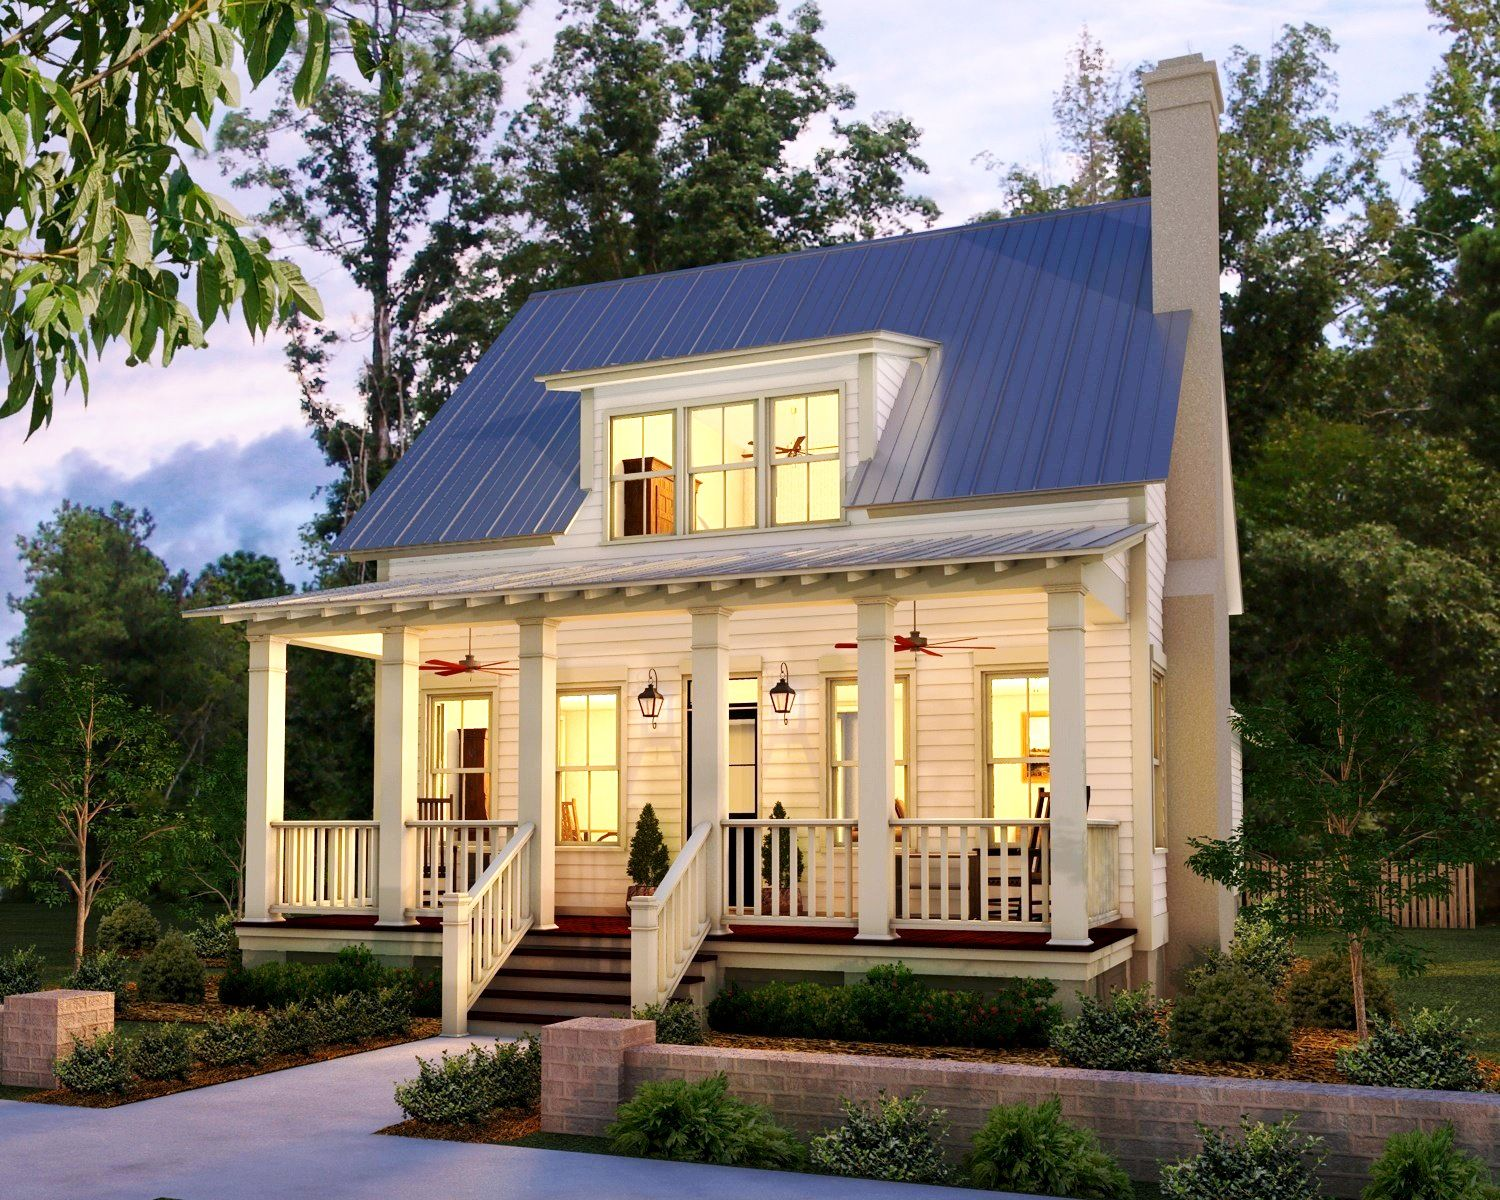 Saluda river club collection of homes columbia sc for Small coastal cottage house plans